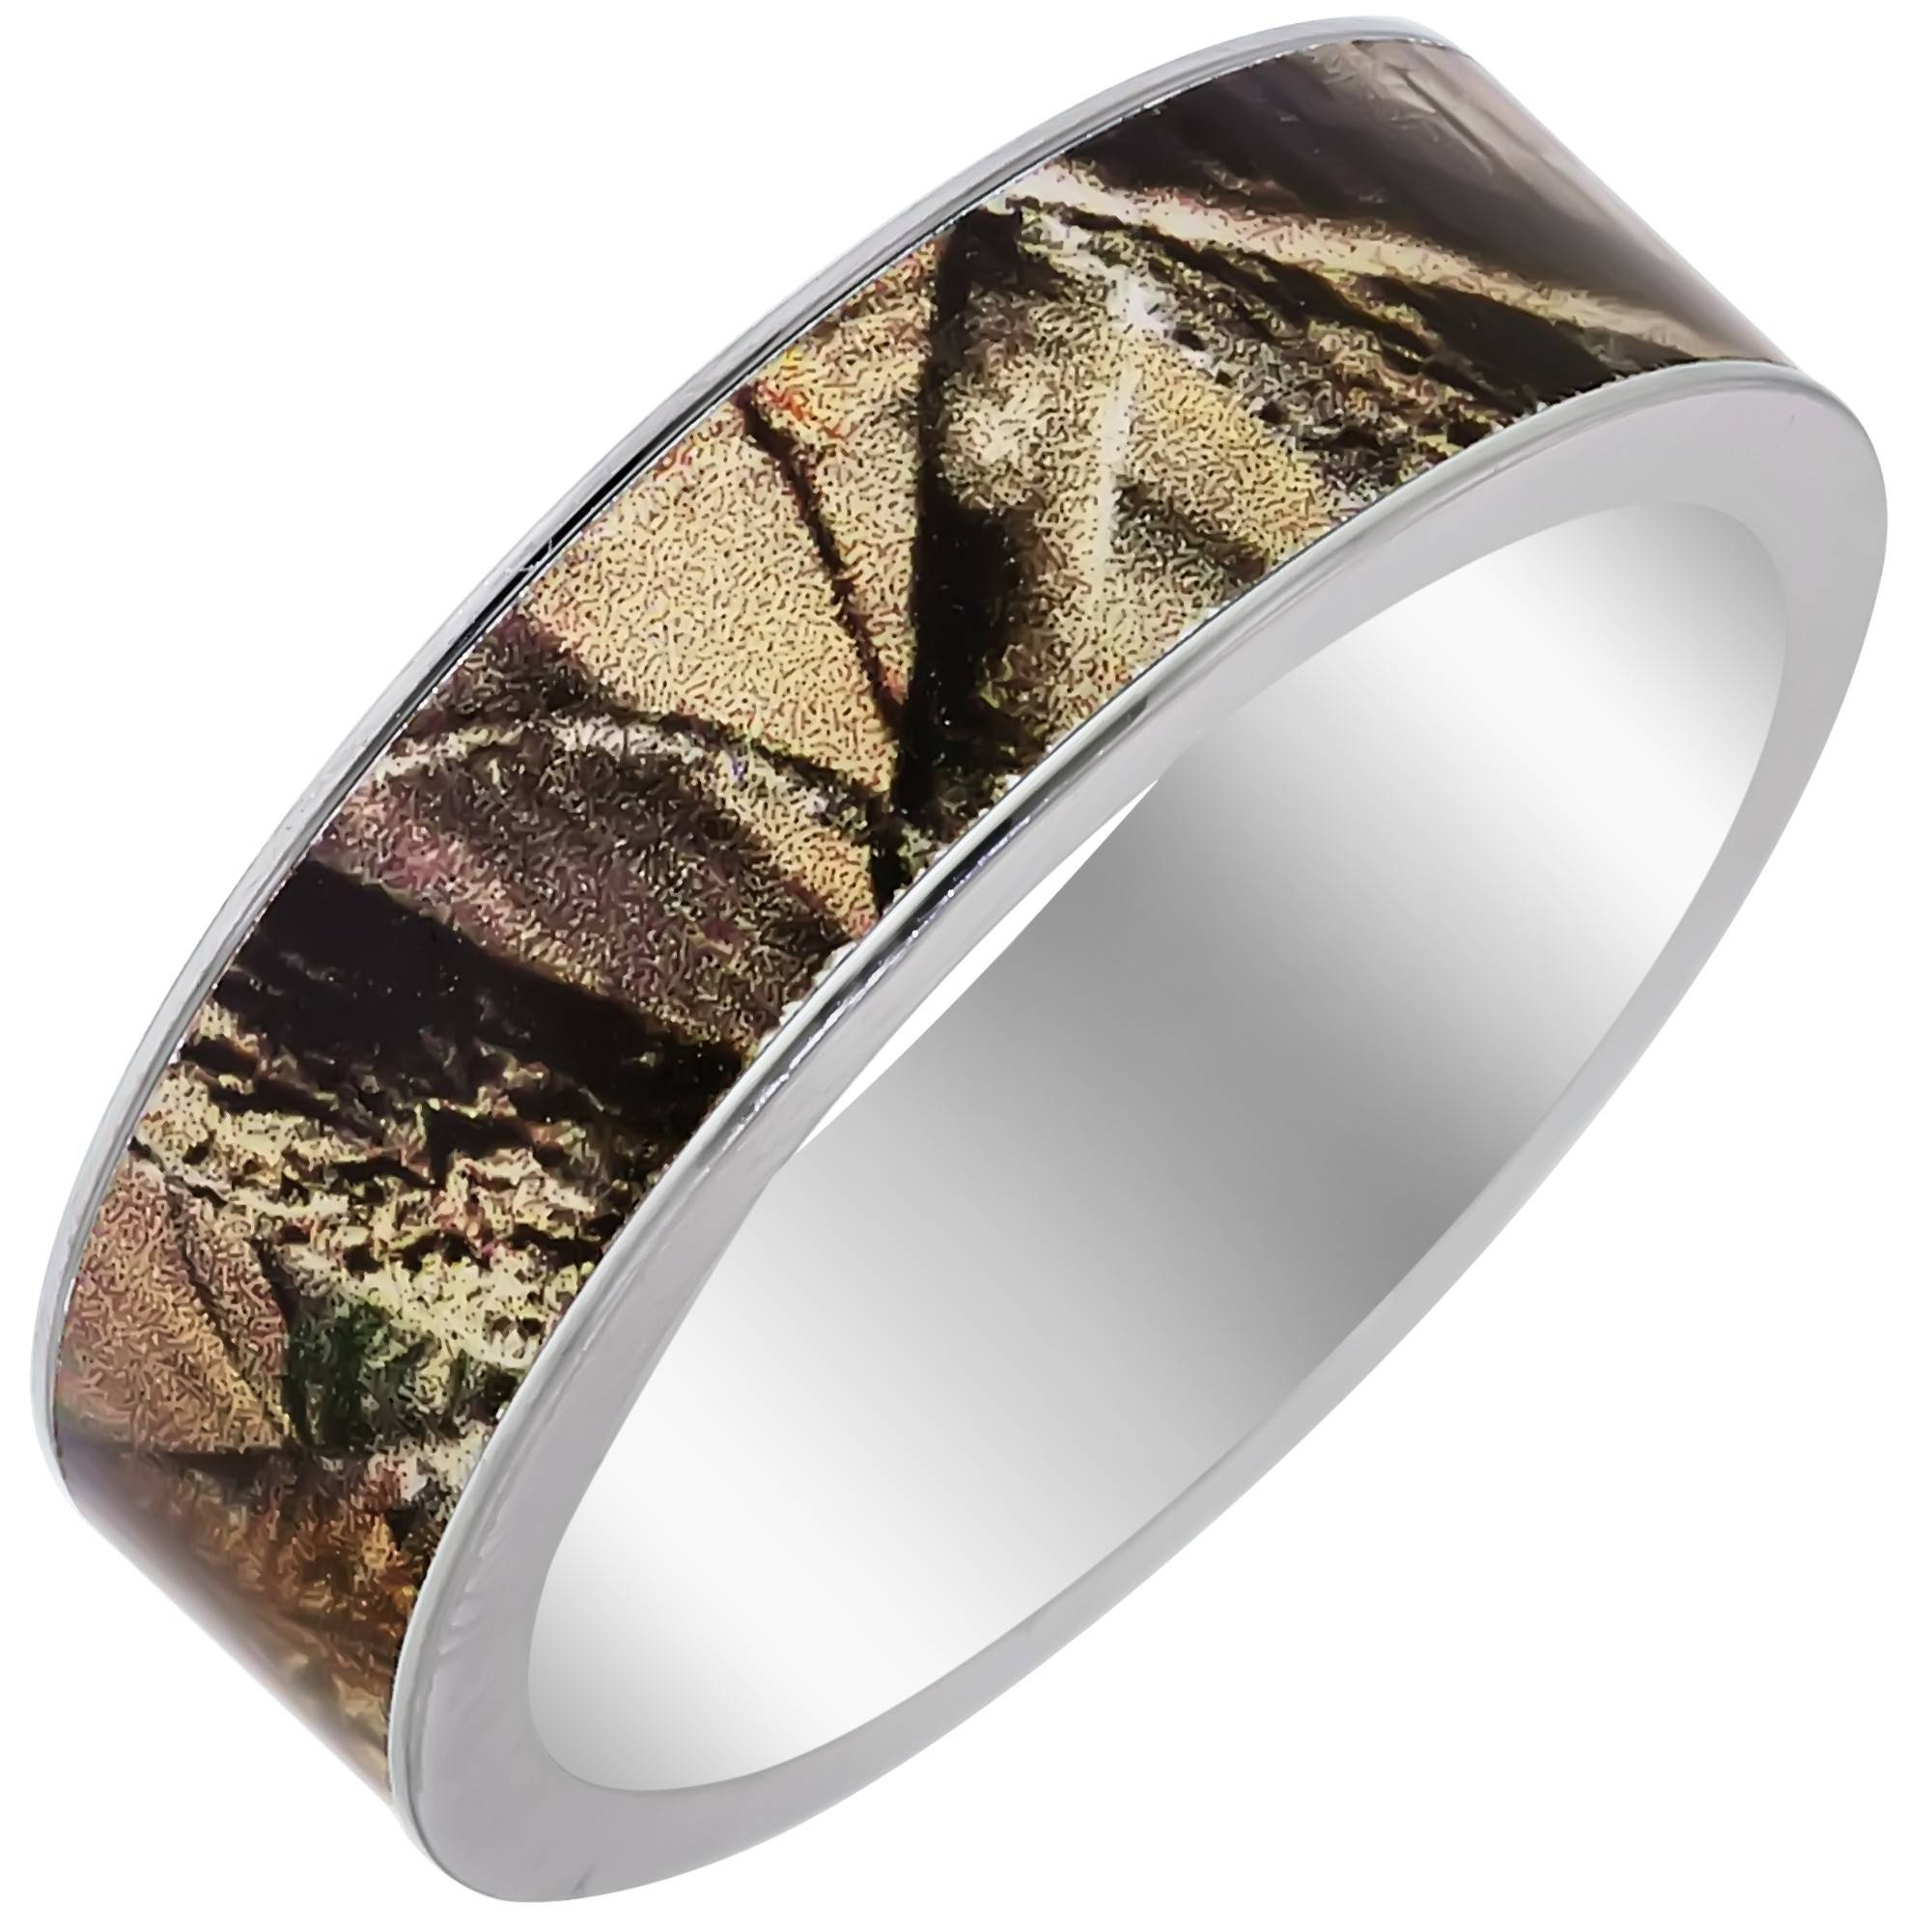 Featured Photo of Camouflage Wedding Bands For Him